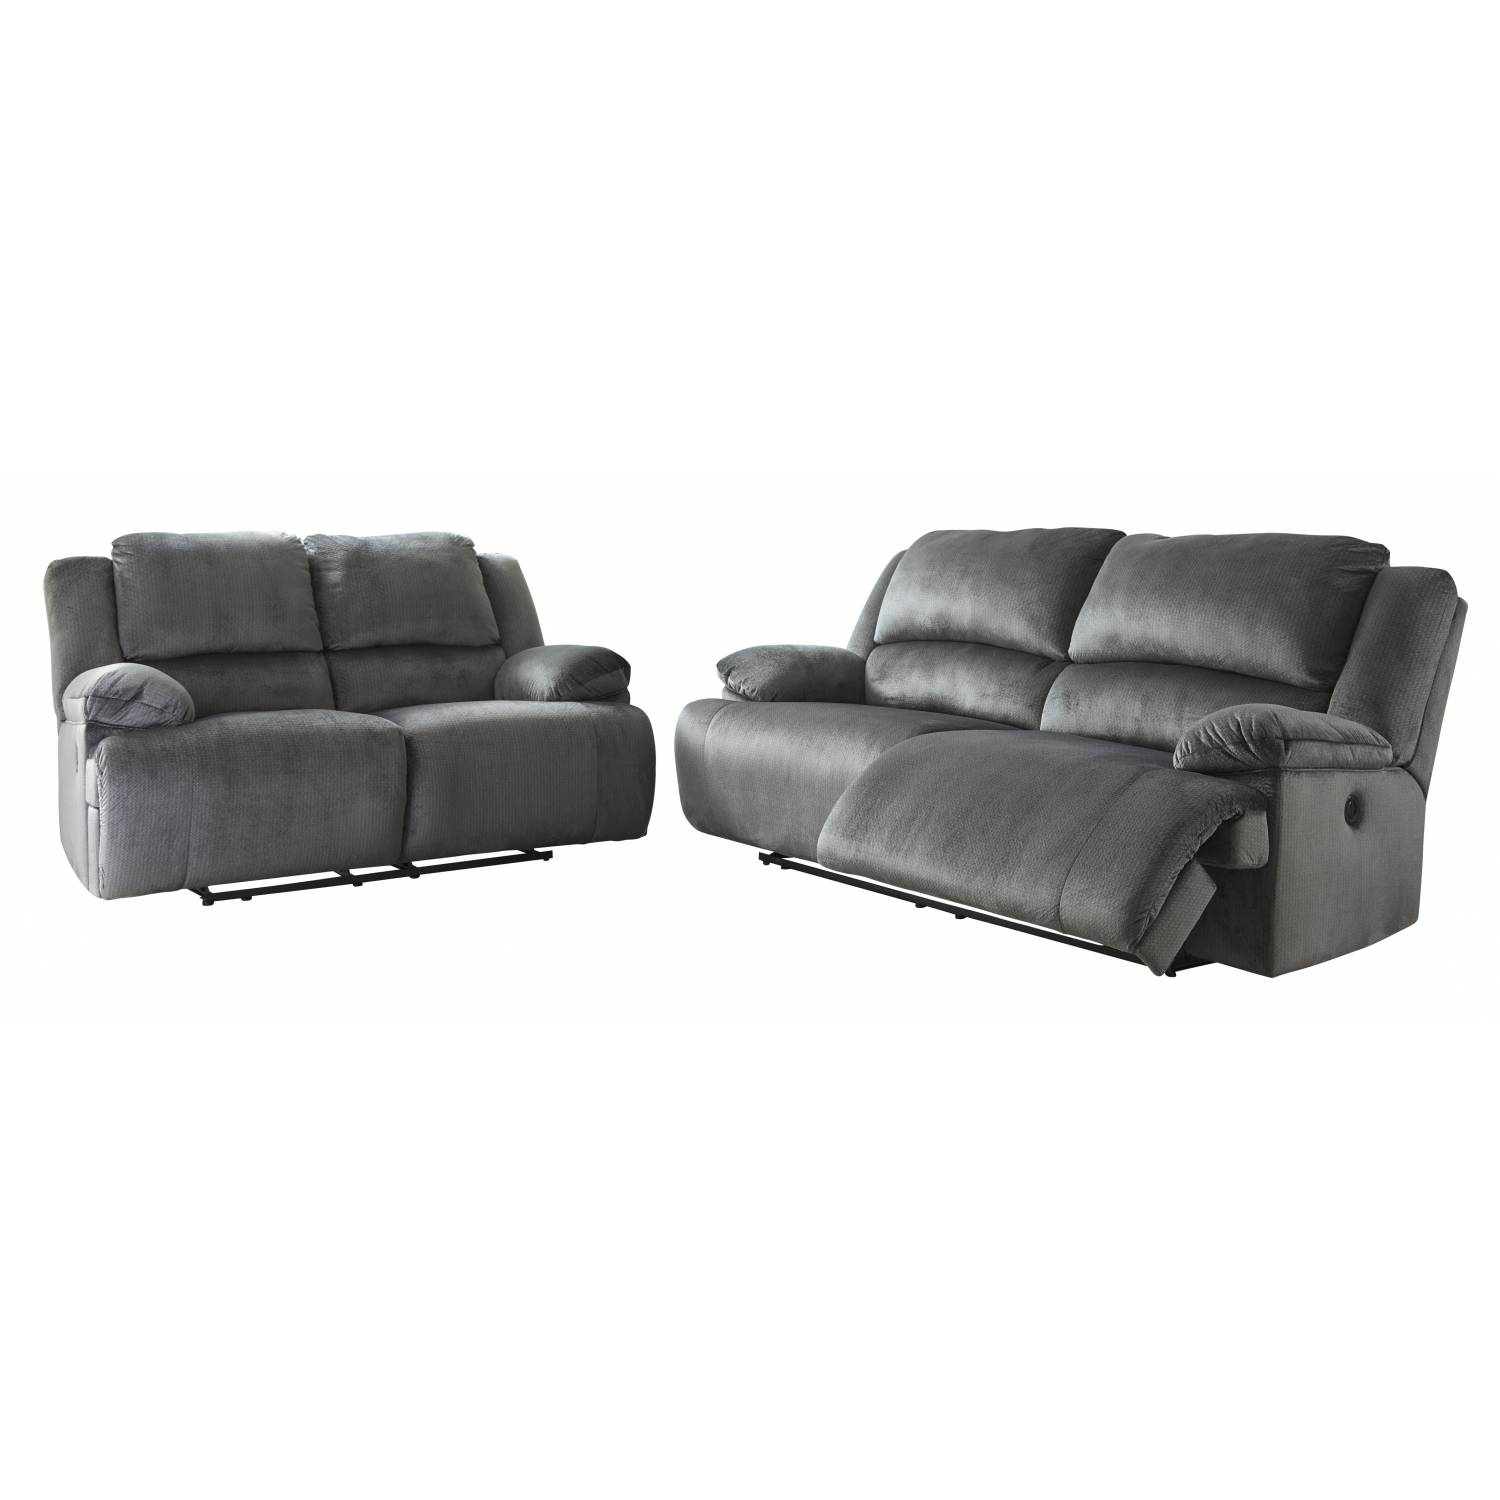 Pleasing 36505 Clonmel 2Pc Sets 2 Seat Reclining Sofa Reclining Loveseat Ocoug Best Dining Table And Chair Ideas Images Ocougorg